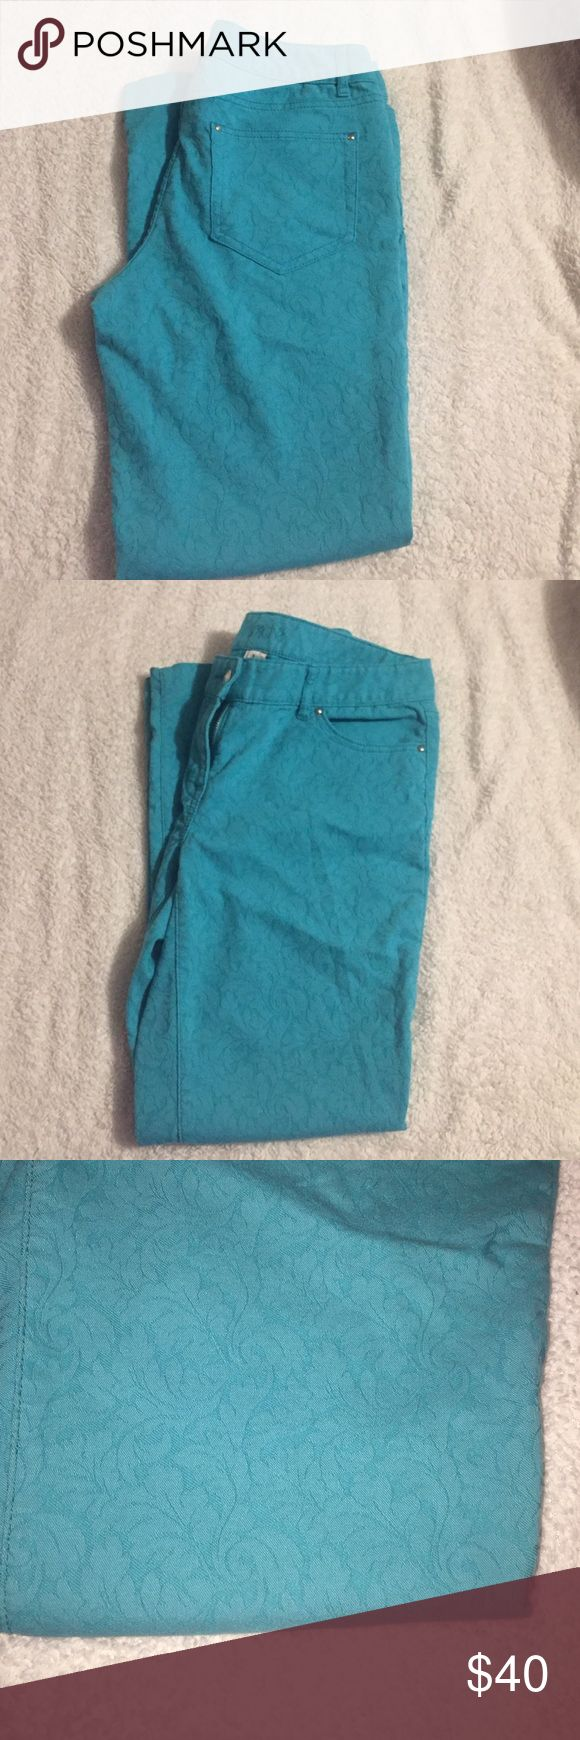 Cache cropped skinny jeans Cache cropped teal/aqua skinny jeans with lace detailing all over. Only worn once, great condition Cache Jeans Ankle & Cropped